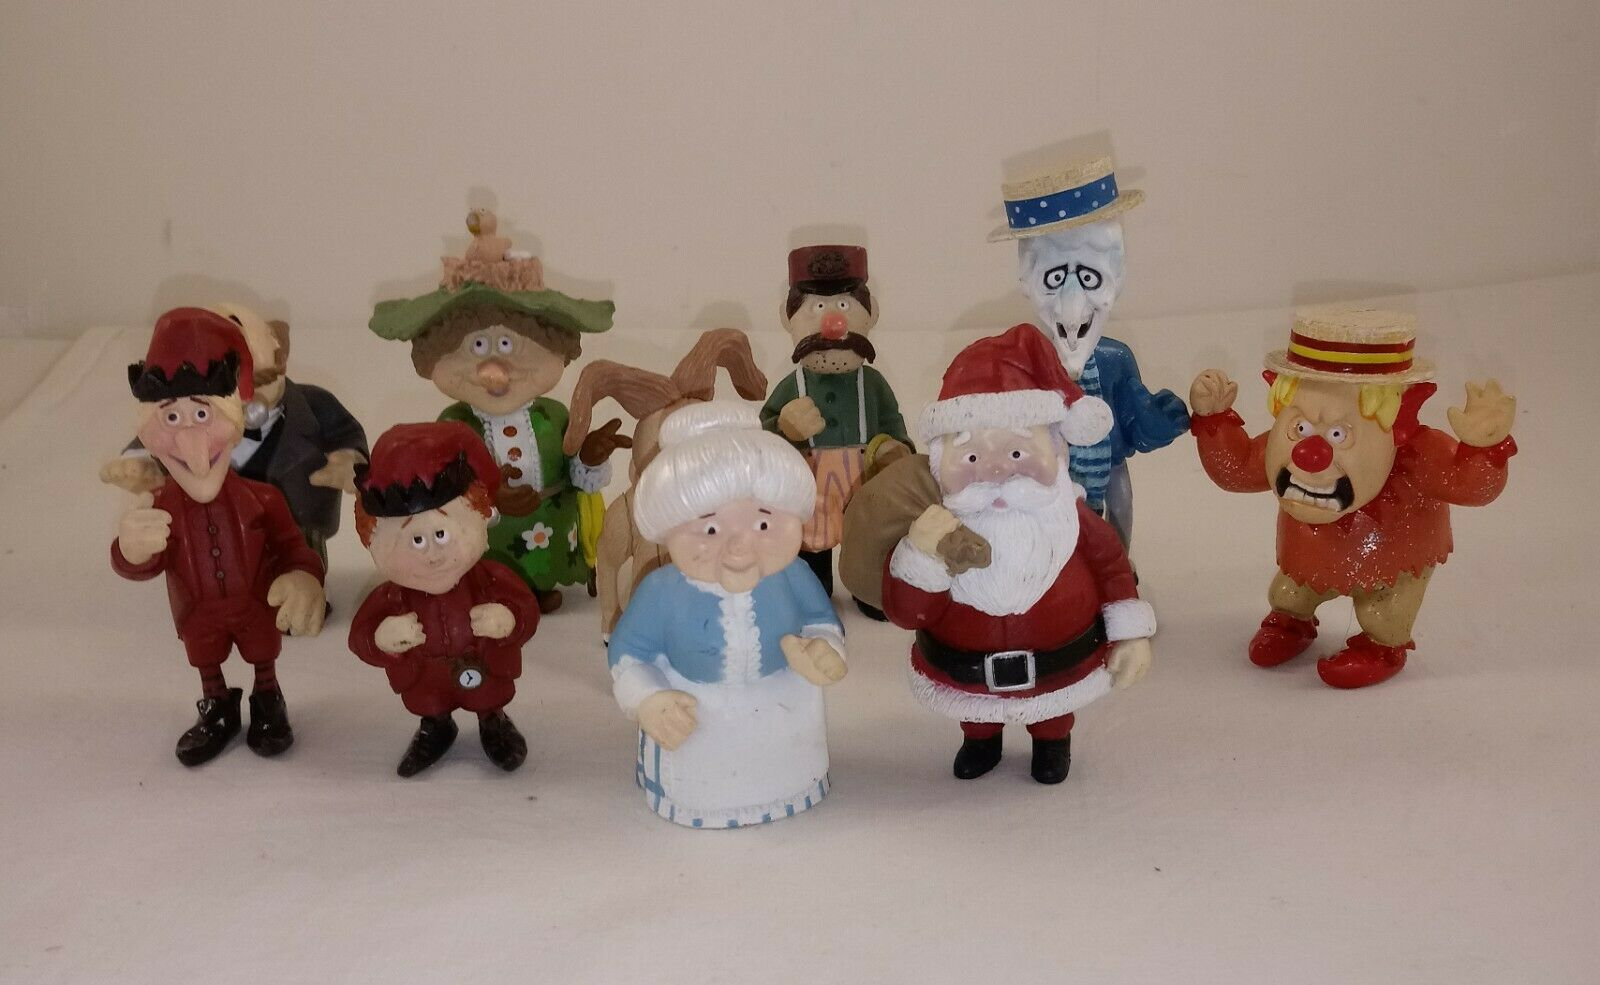 2006 Neca The Year Without A Santa Claus Loose Figurines 10 Pieces - $178.19